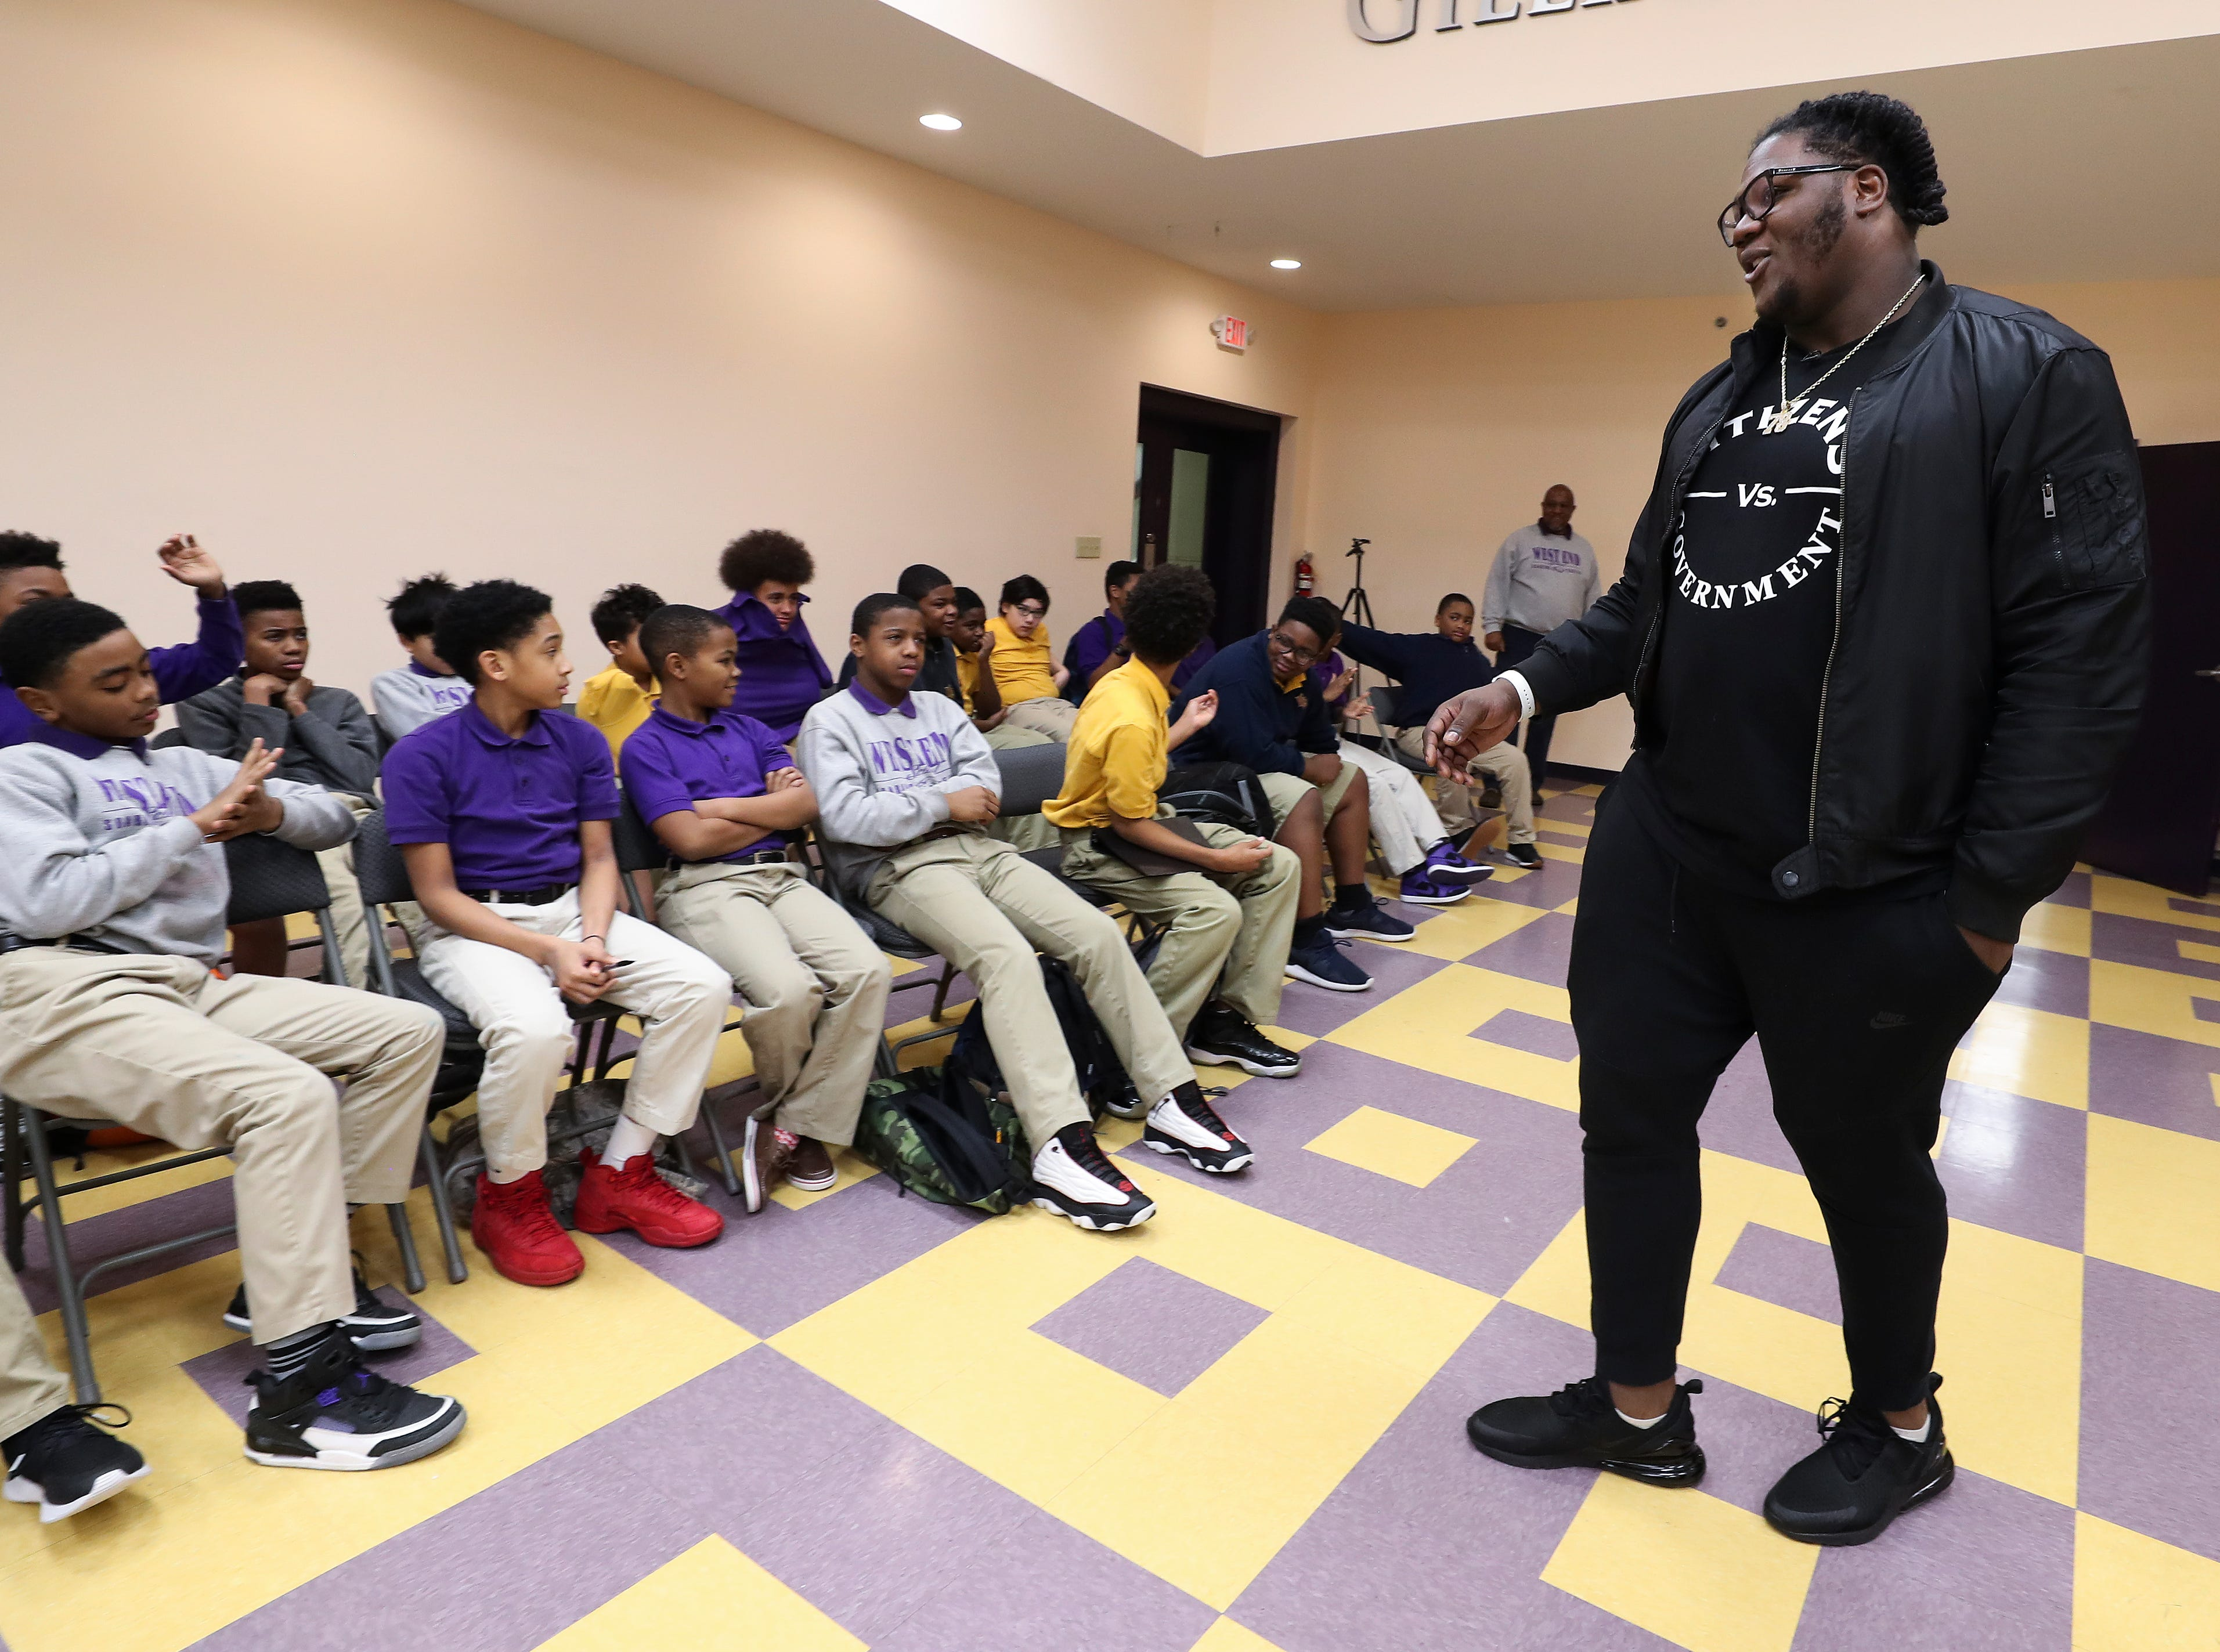 Jamon Brown, right, a former U of L football player who is in the NFL now, spoke to a group of students at the West End School about ways to prevent bullying.  He plays right guard for the New York Giants.Feb. 11, 2019